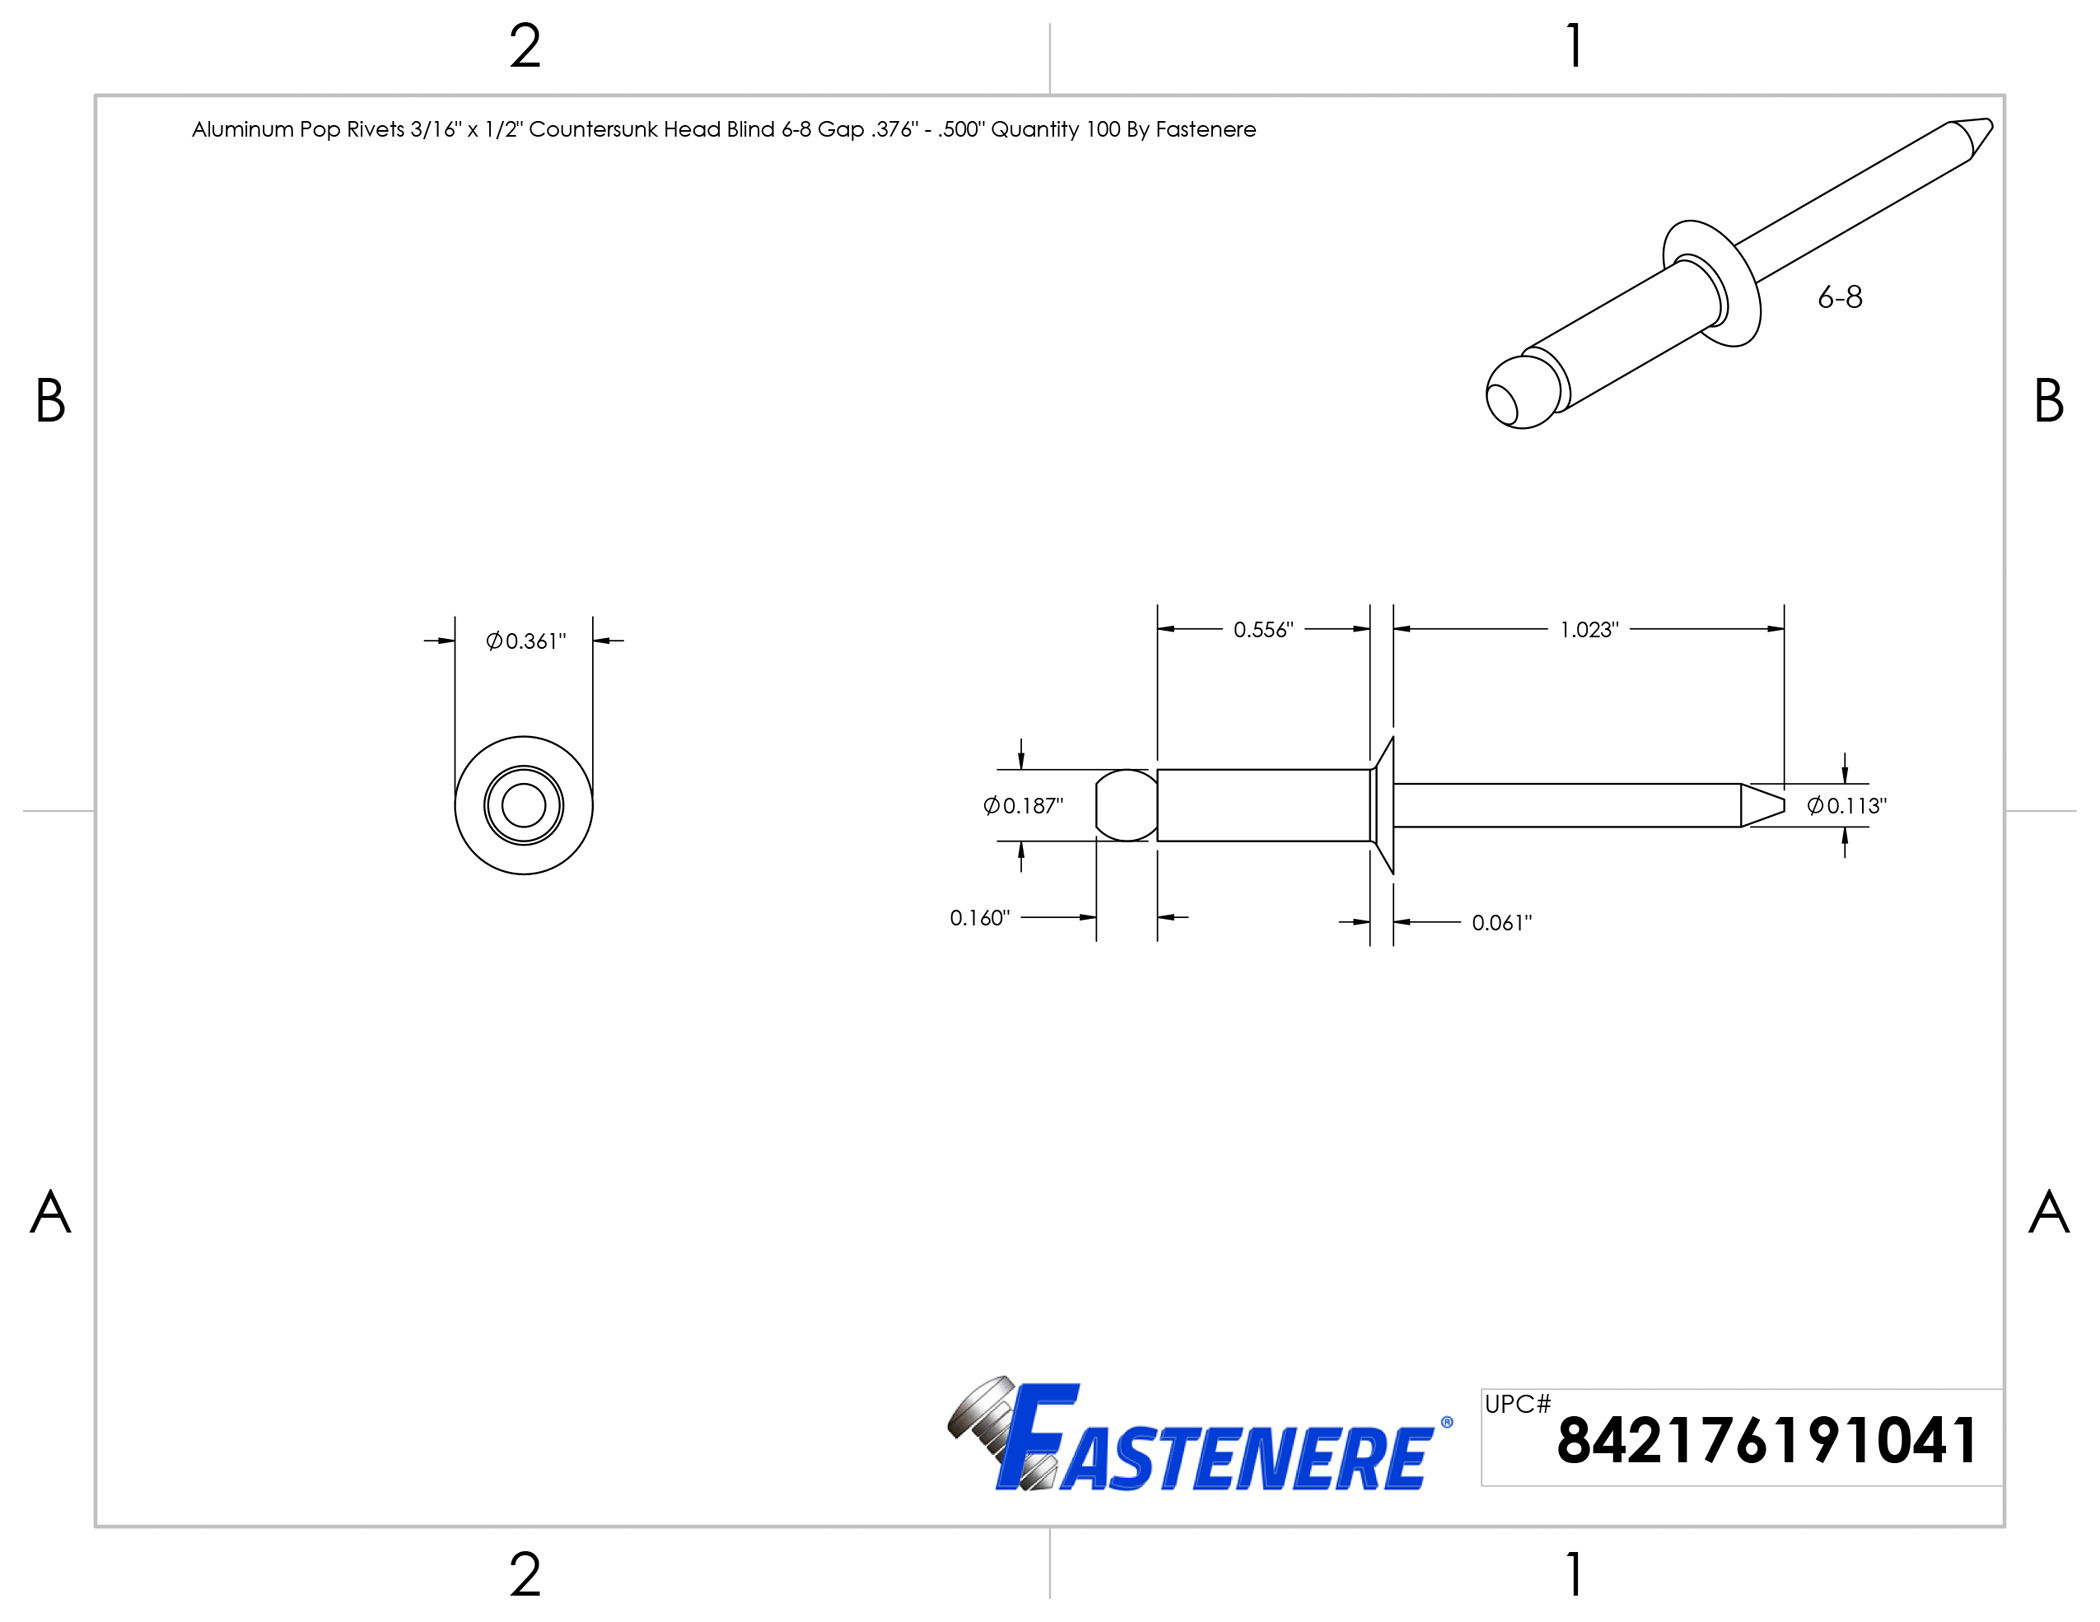 1//2 inch head. 3//16 inch dia x 1 inch long Tinned Copper Counter Sunk Rivets